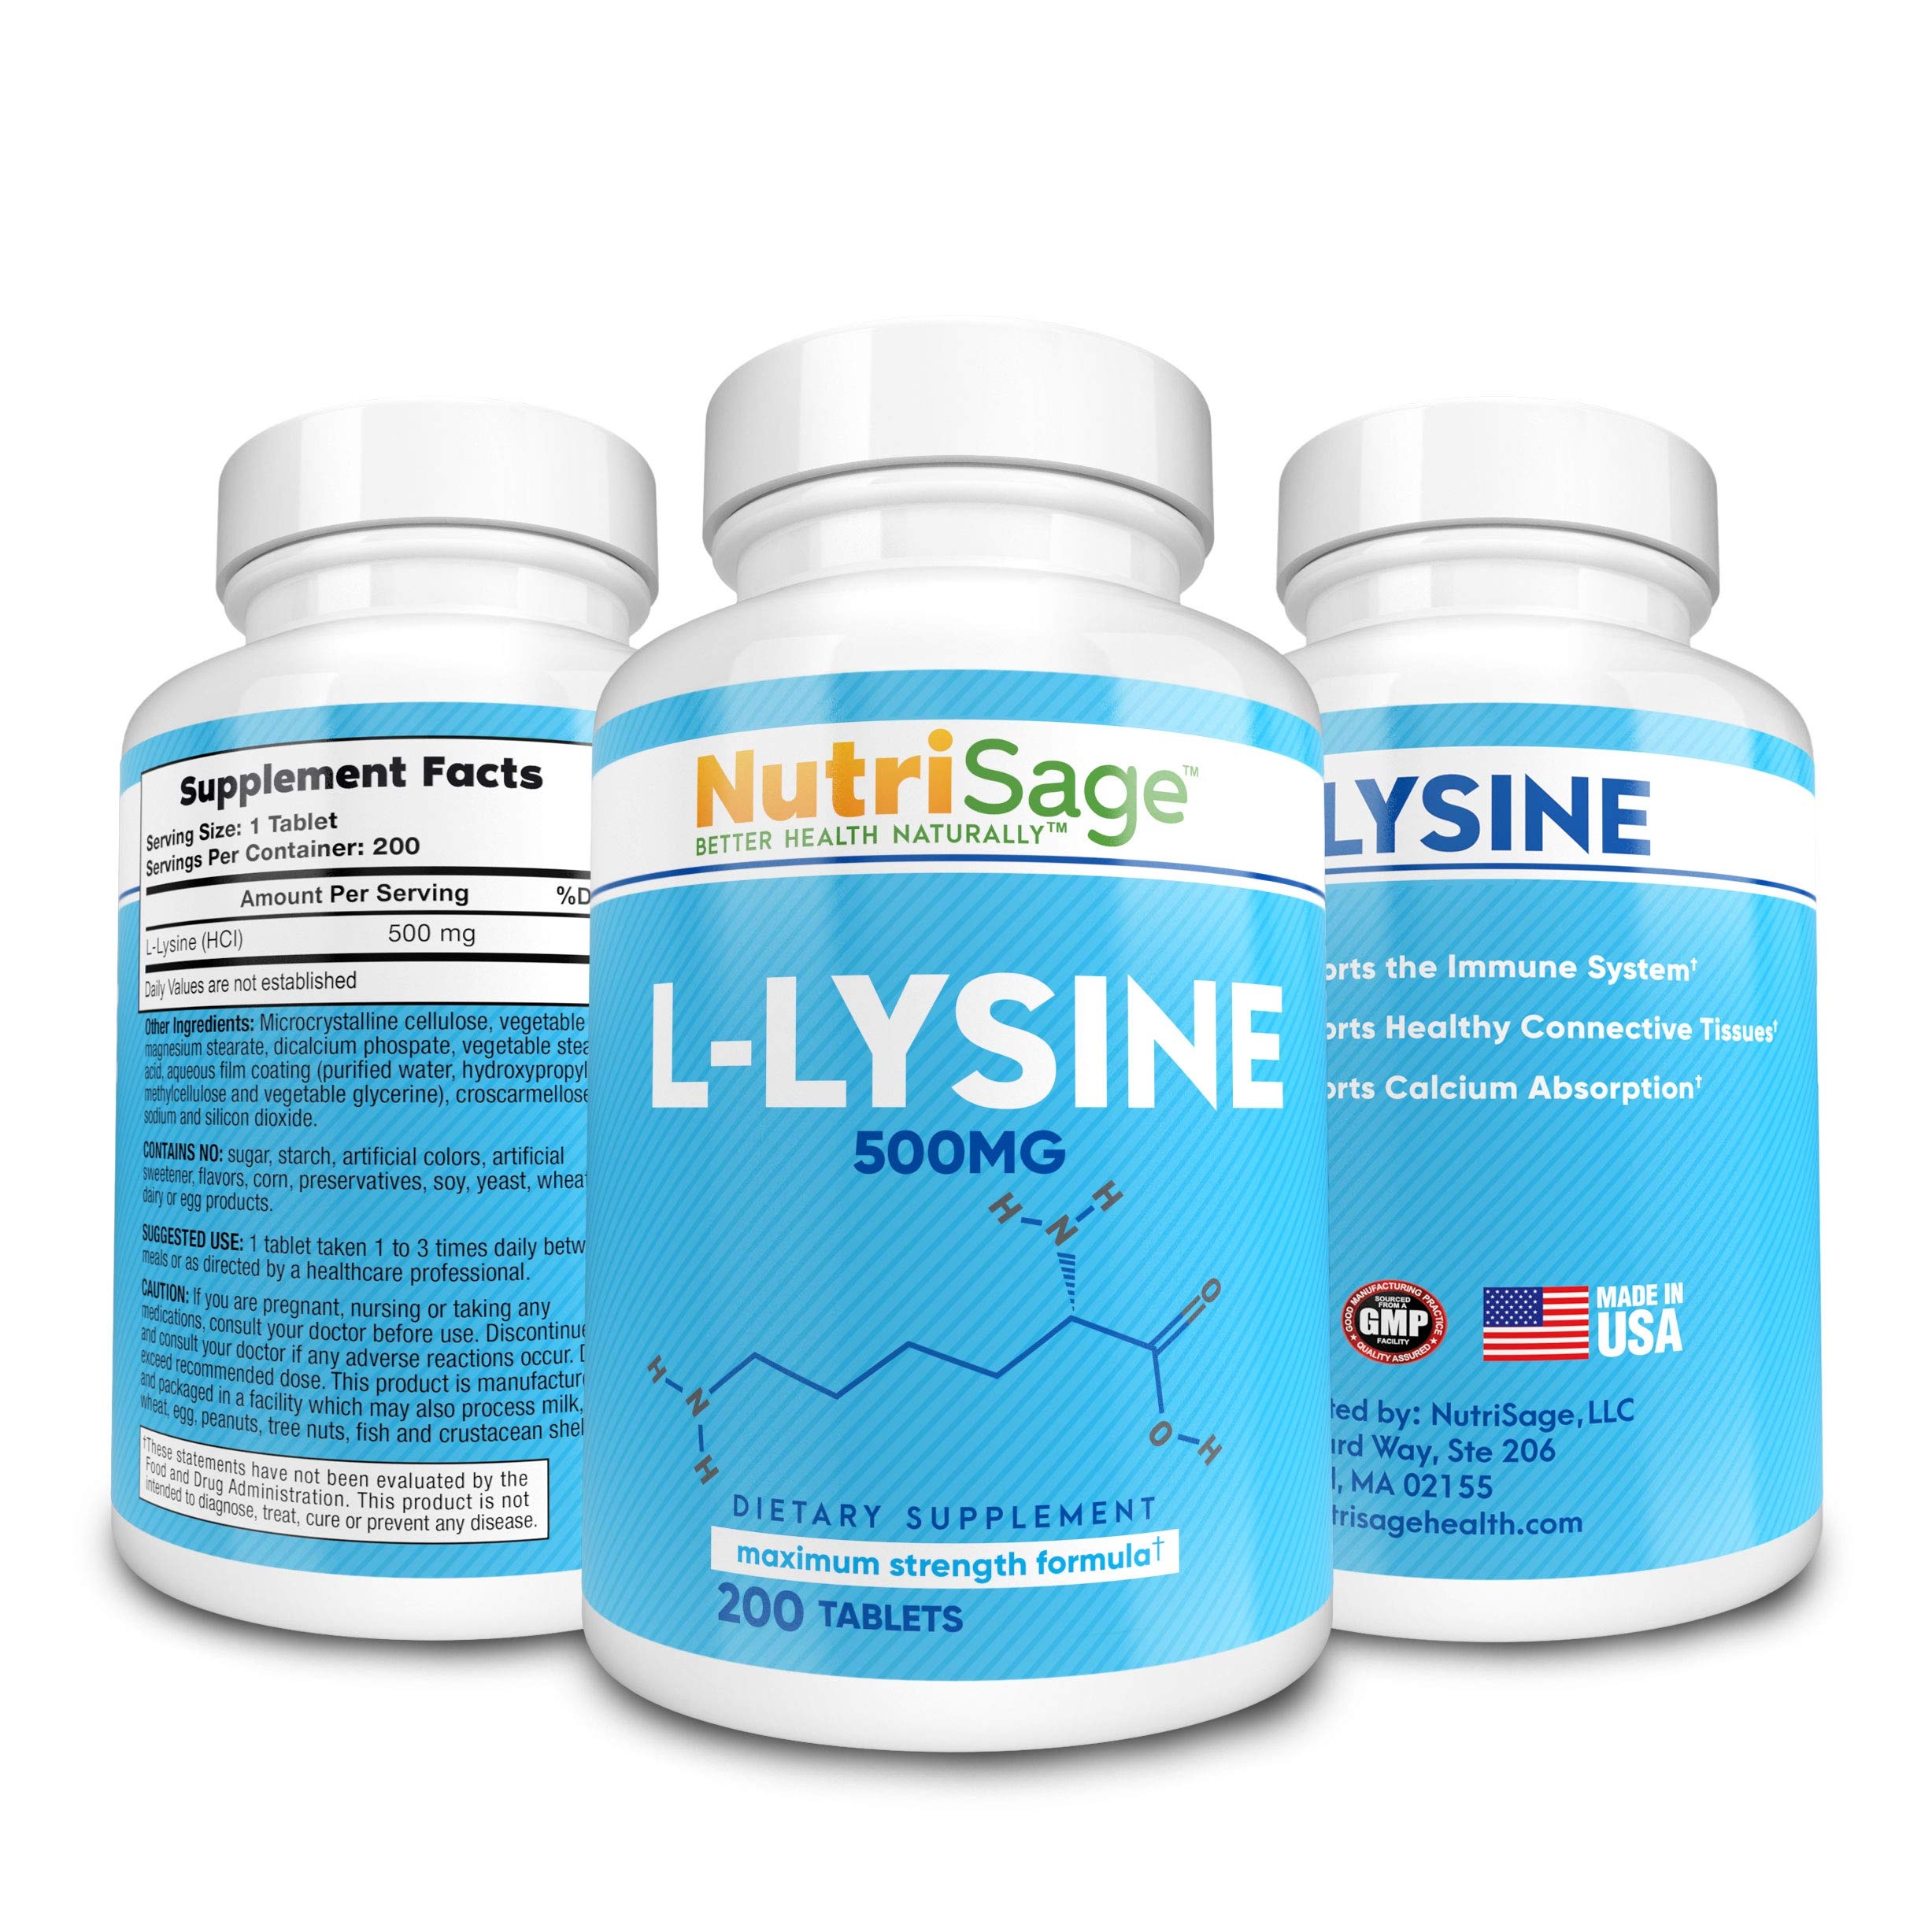 Premium Super L Lysine - 500mg Amino Acid Tablets For Cold Sore Care,  Shingles, Immune Support & More - 200 Count Per Bottle - My Physical Well  Being